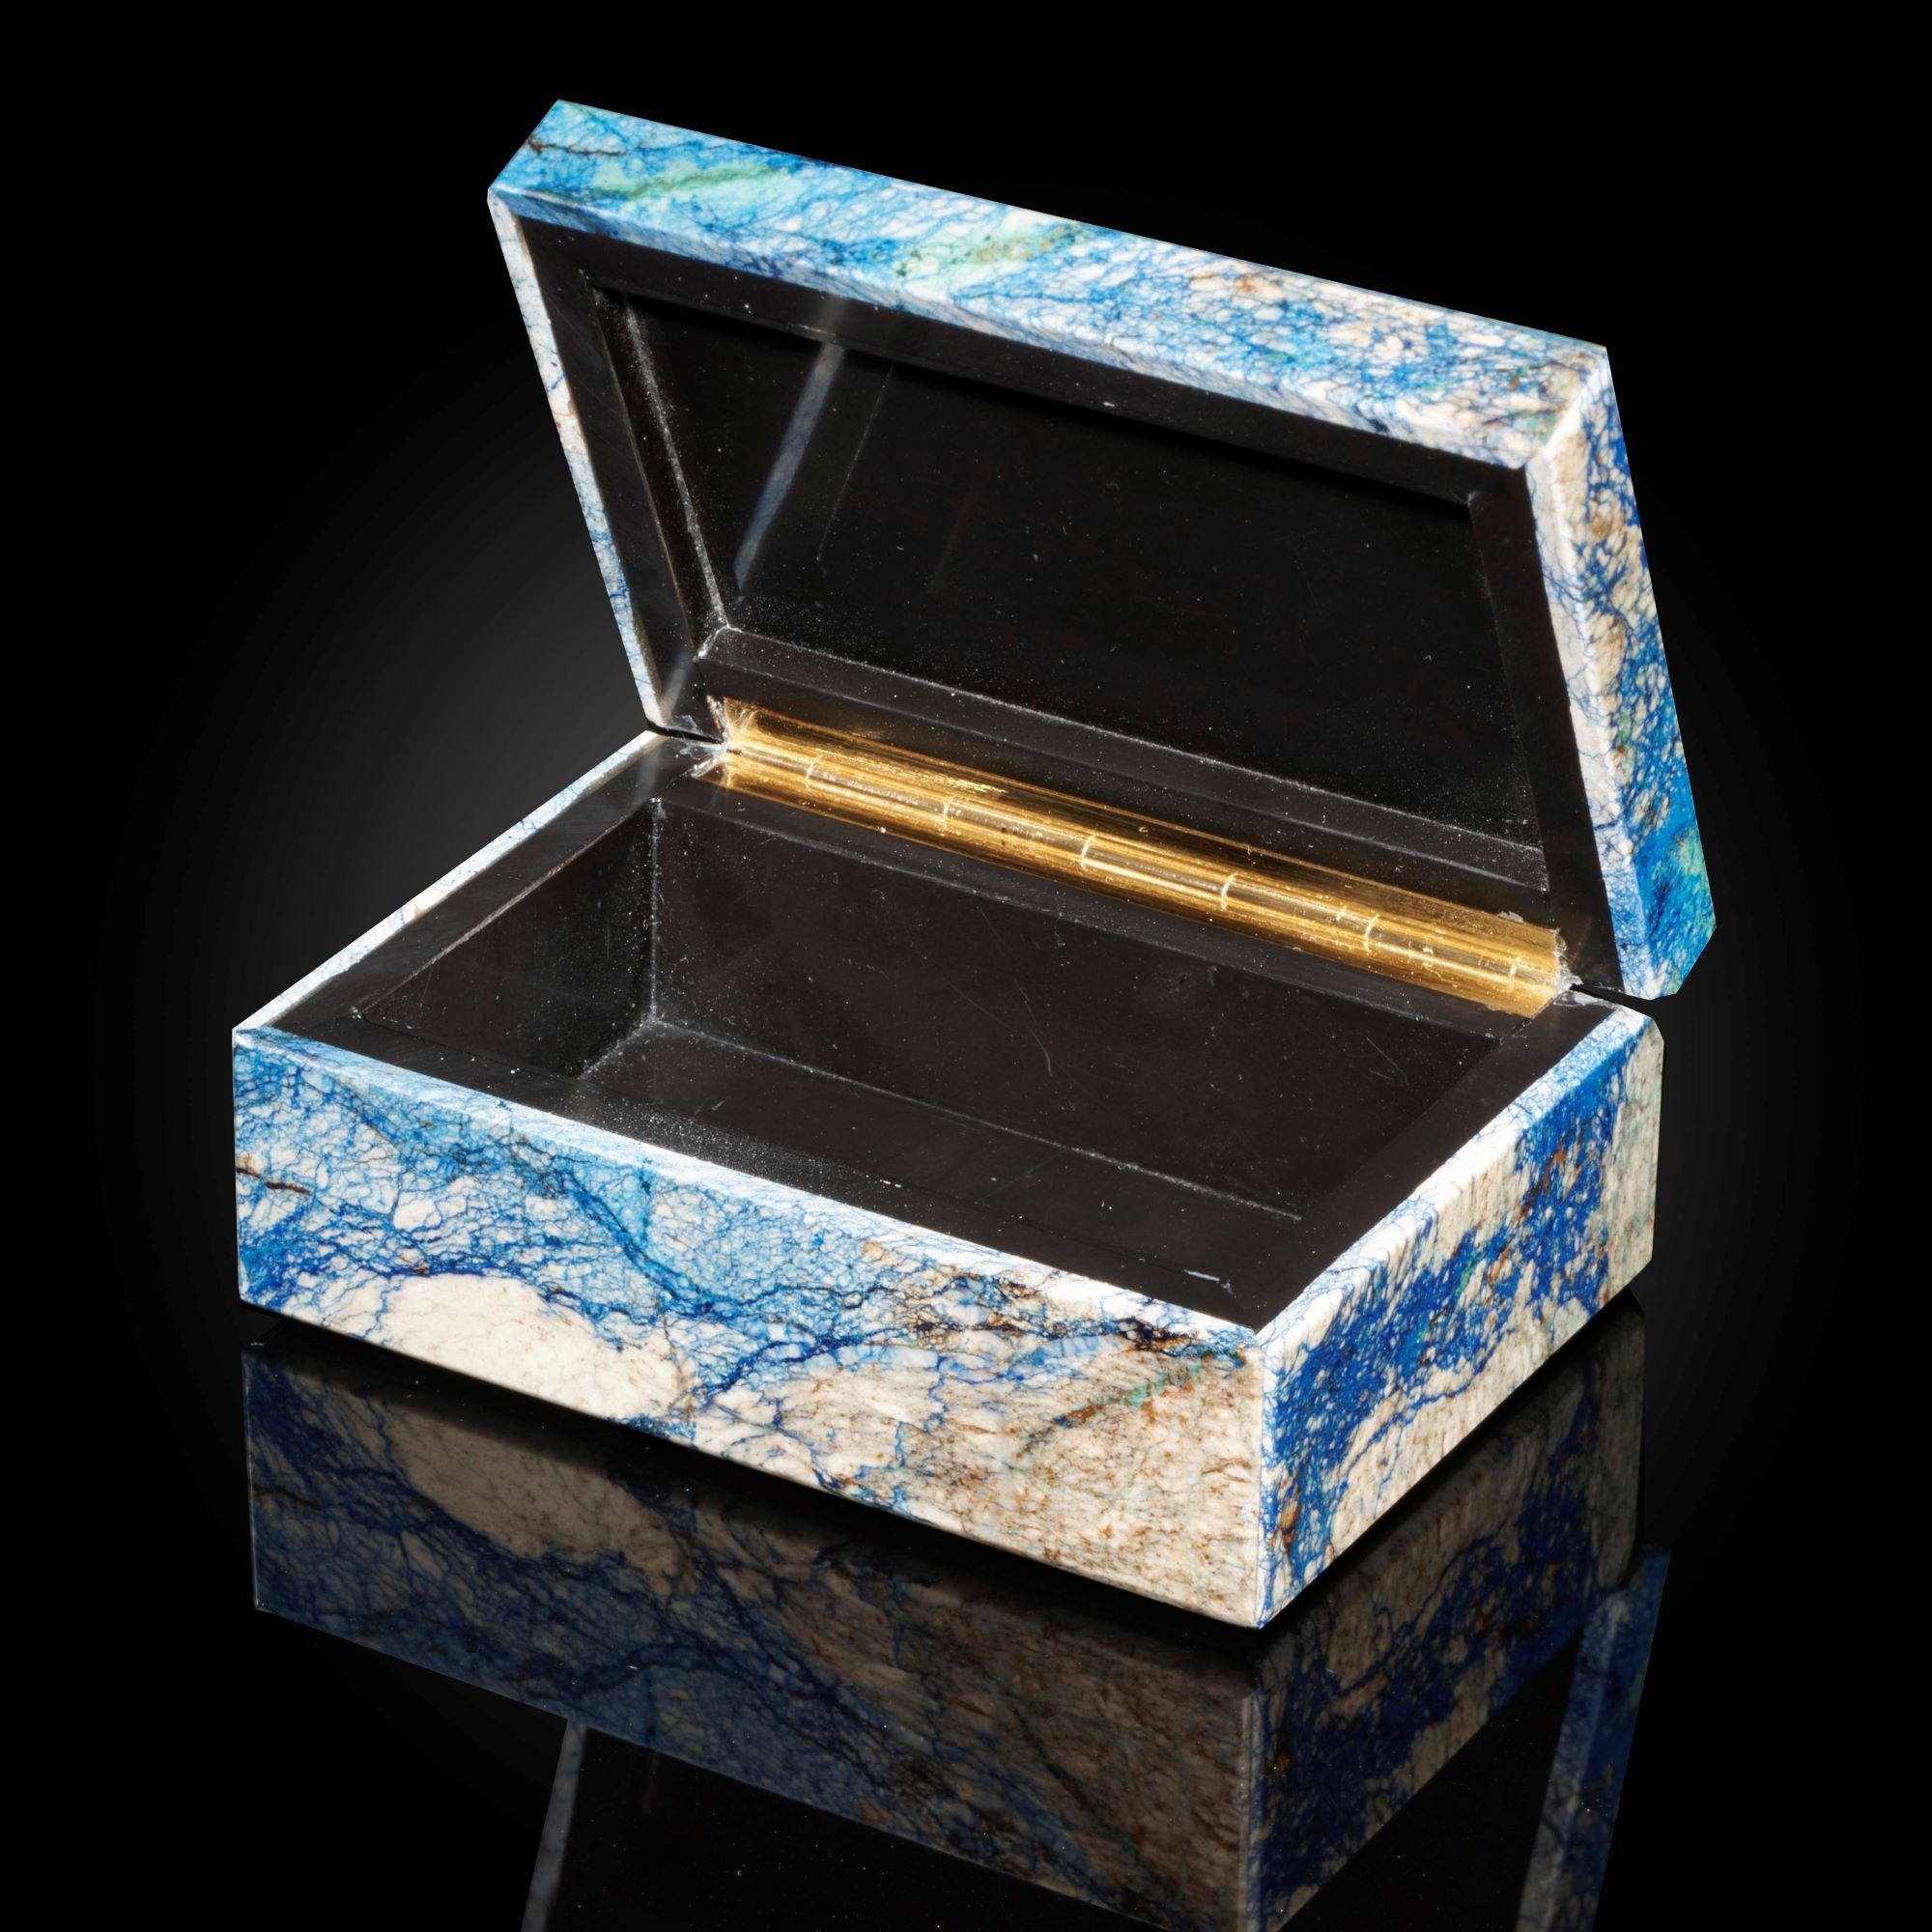 Lot 28 - Interior Design/Minerals: An Azurite box, in fitted case, 10cm by 7cm by 4cm